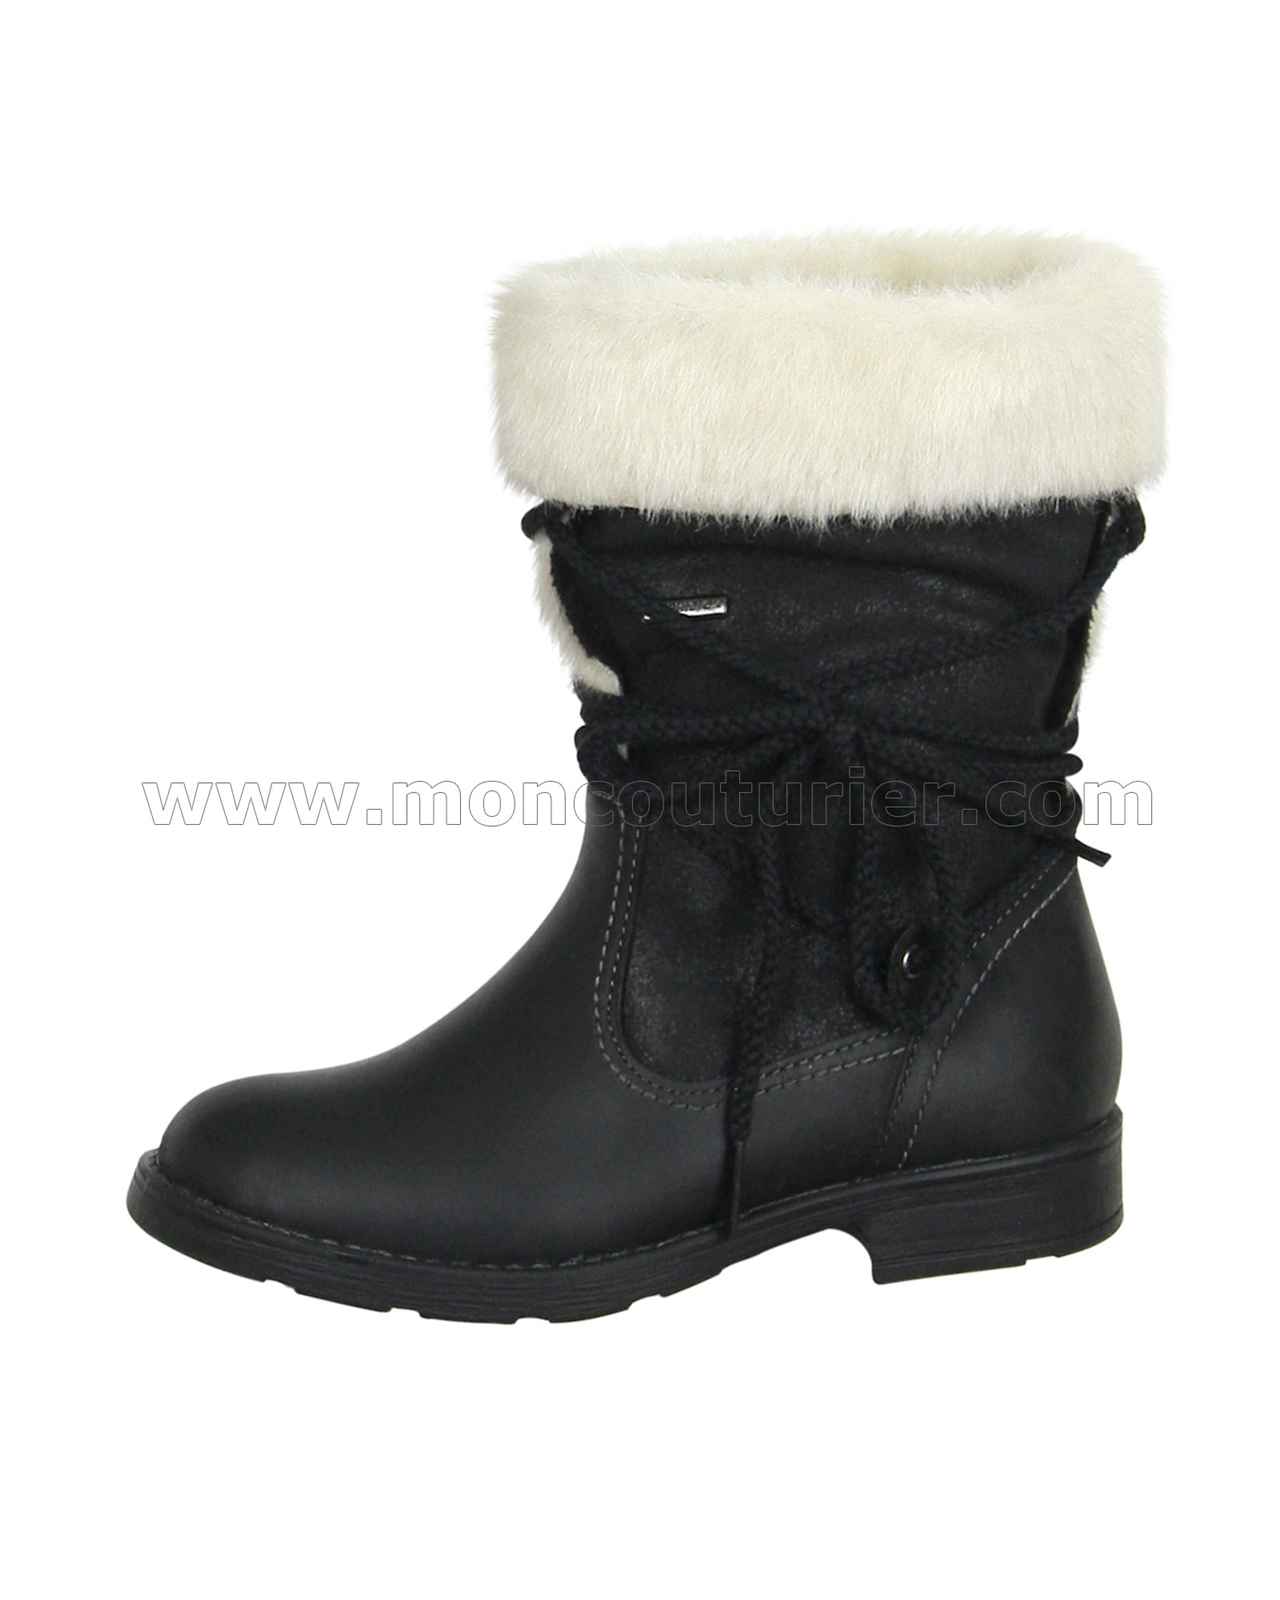 65033f64 GEOX Girls' Short Boots with Fur Jr Sofia, Sizes 28-36